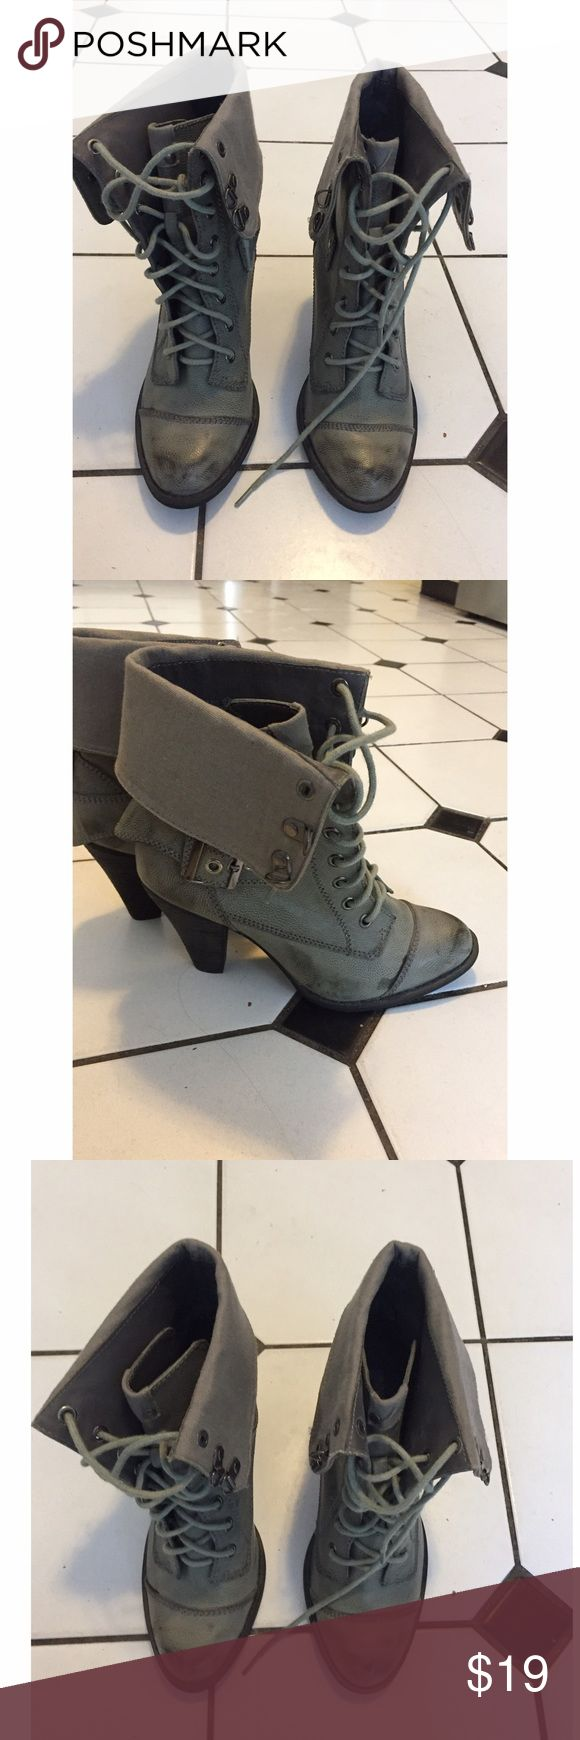 Not Rated grey lace up booties with heel size 7.5 Not Rated grey lace up booties size 7.5 Not Rated Shoes Ankle Boots & Booties